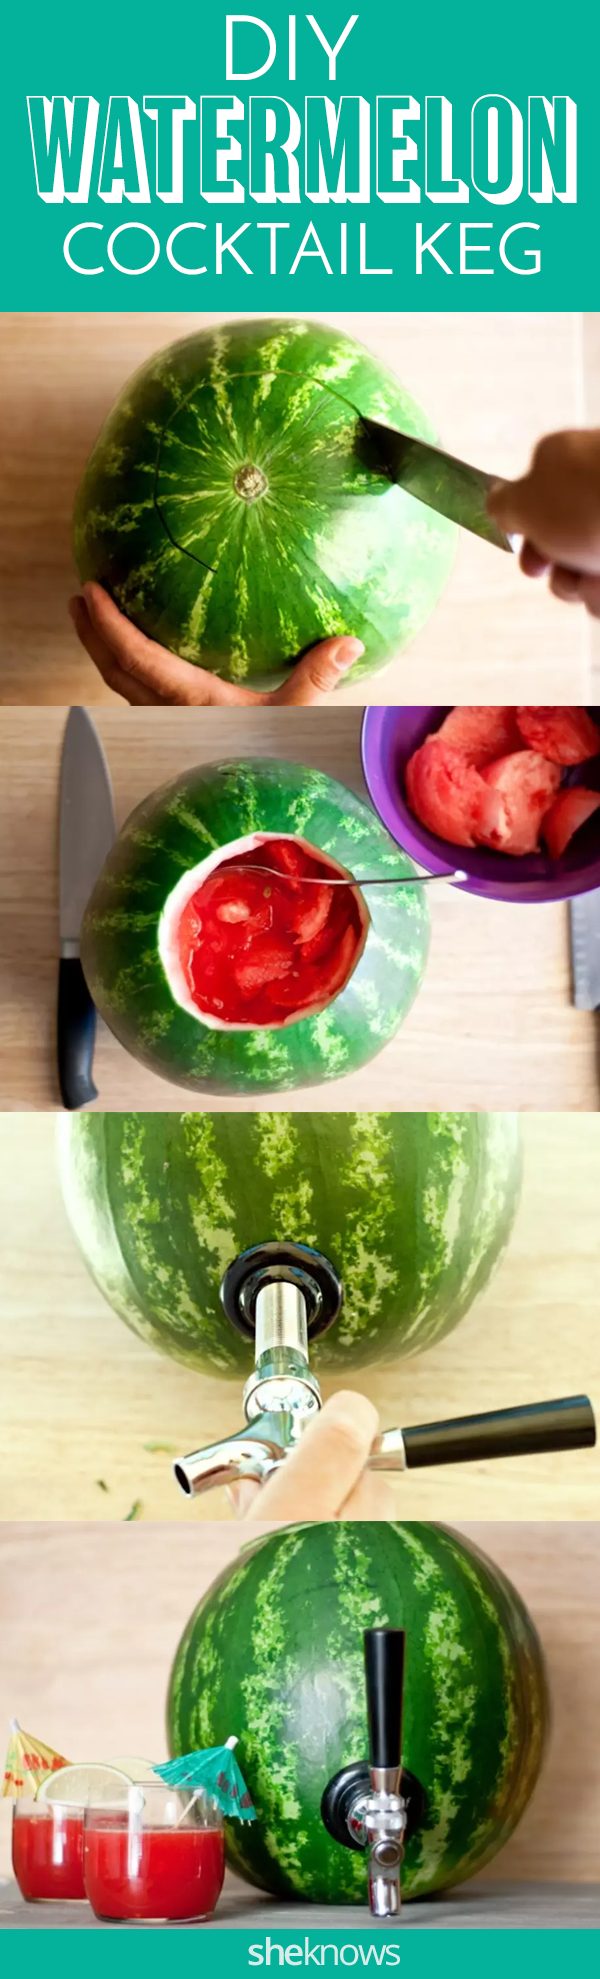 Pin it! Watermelon Cocktail Keg